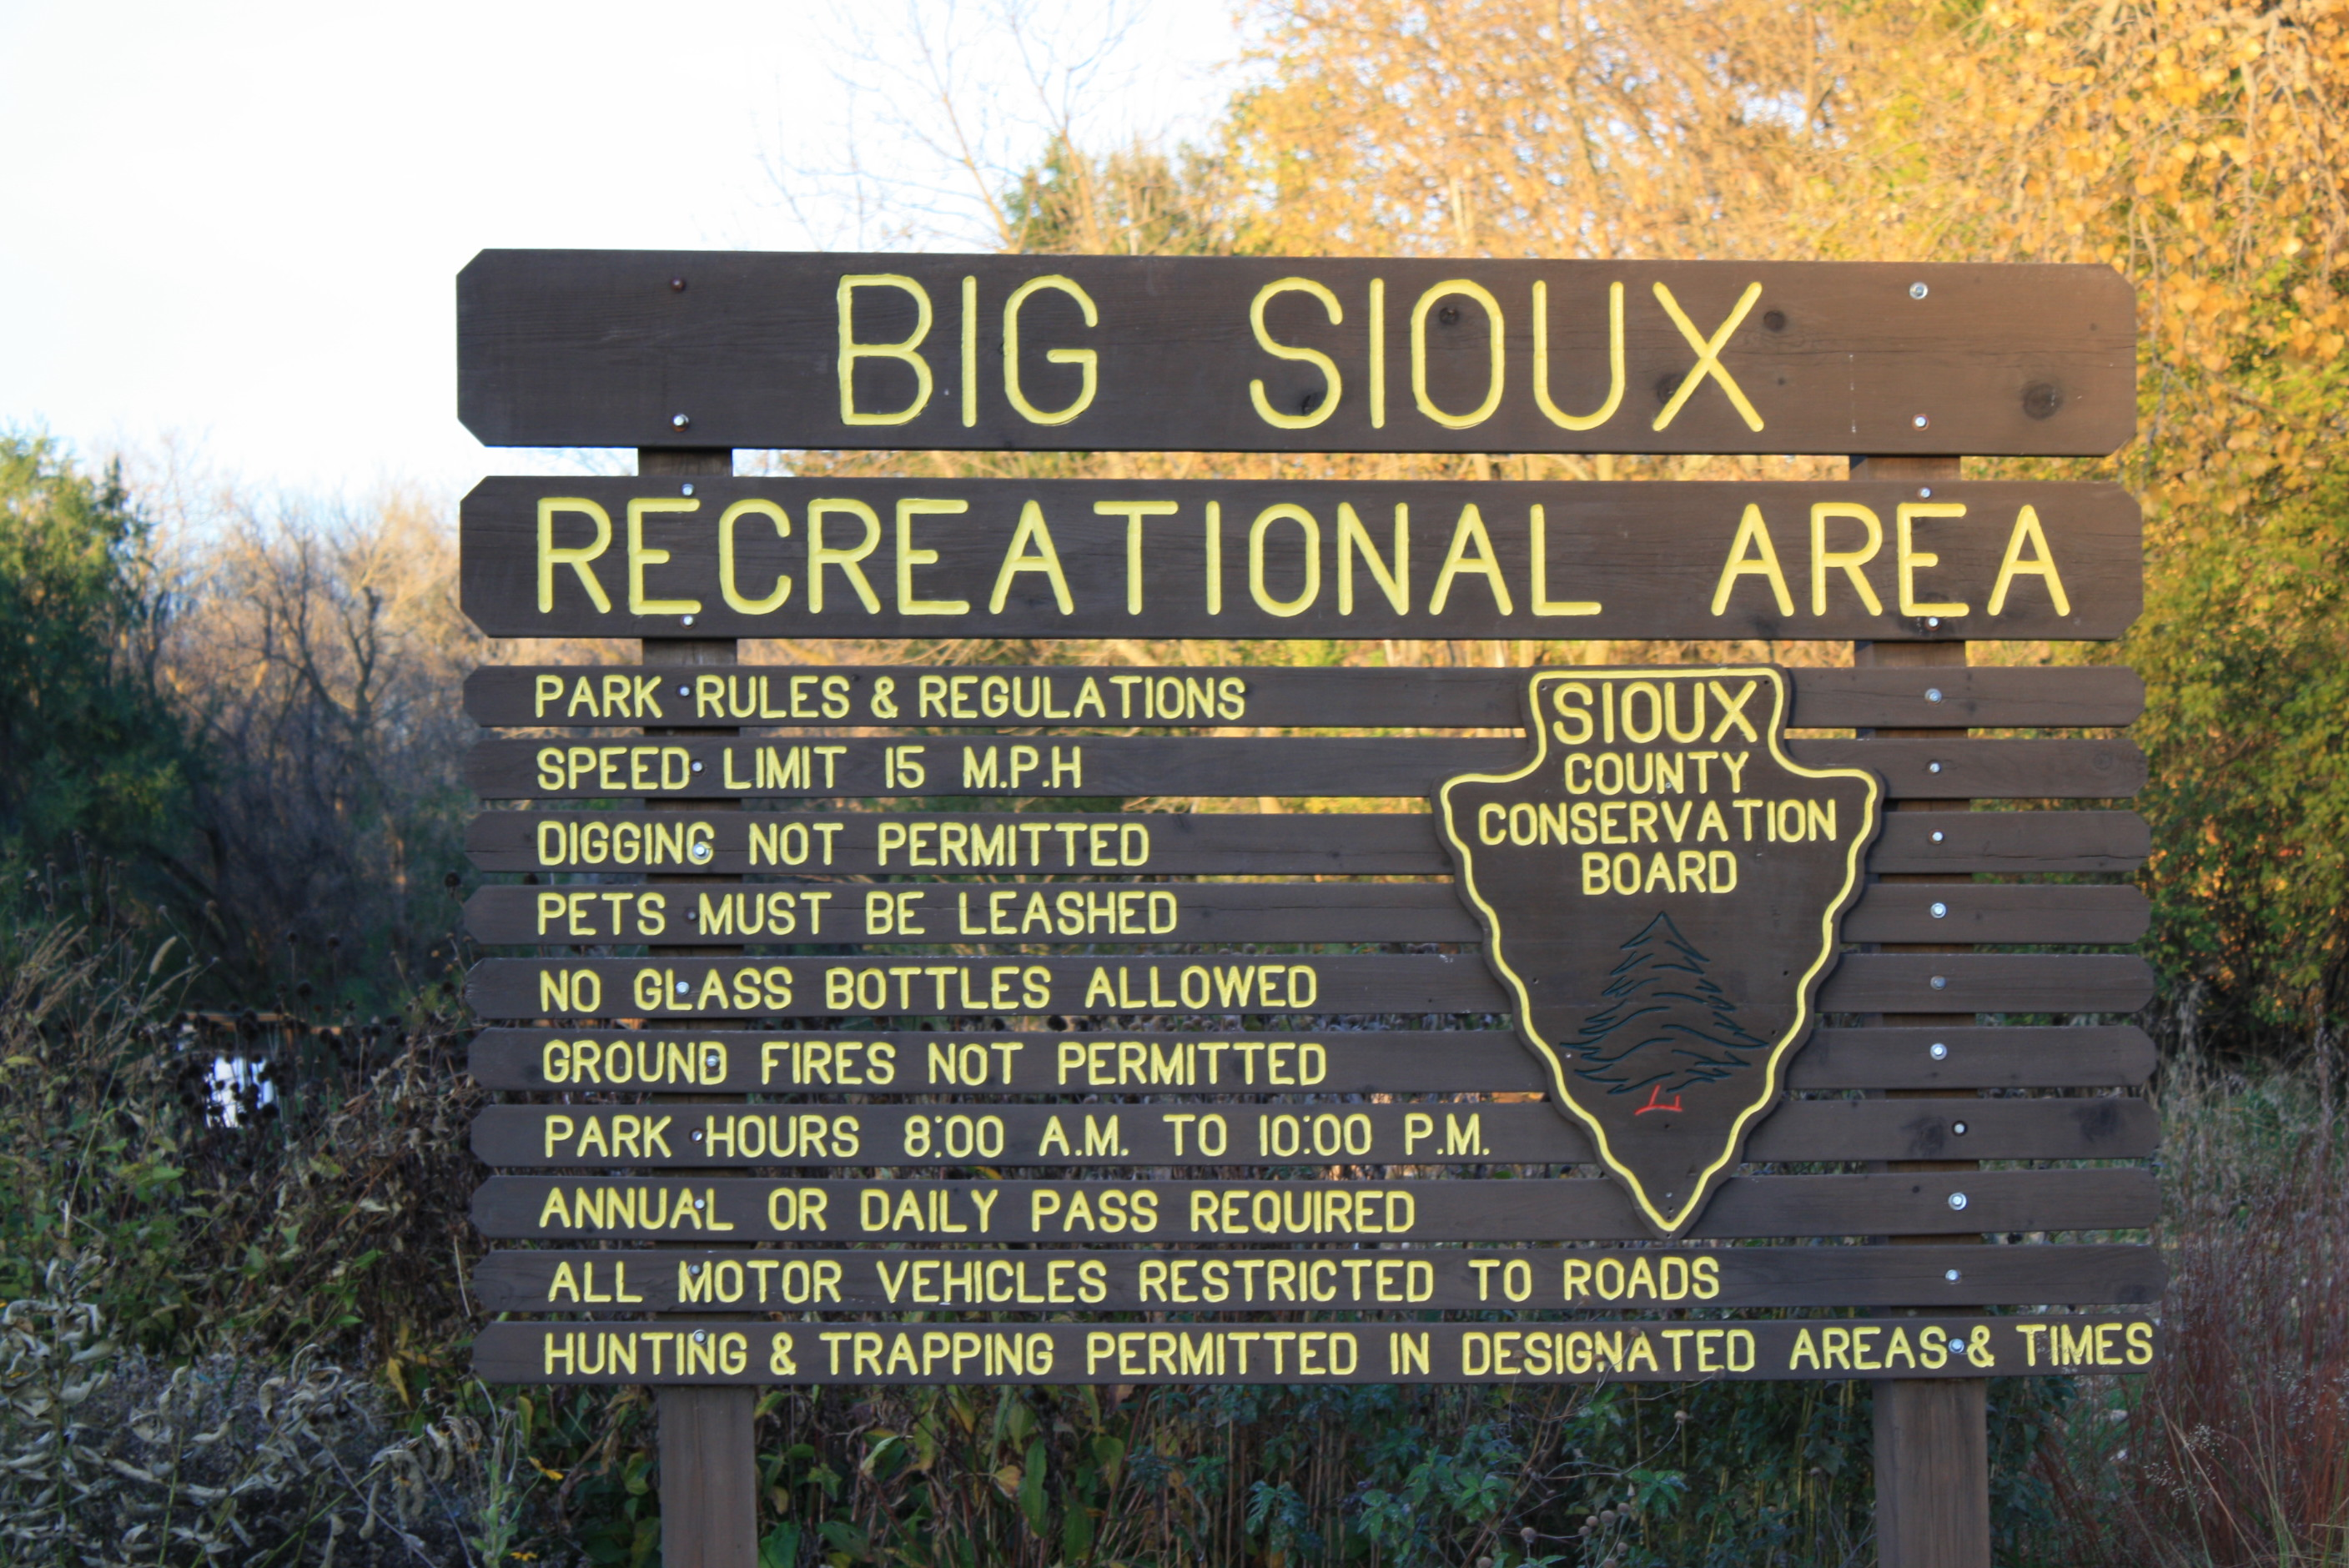 Big Sioux Recreation Area